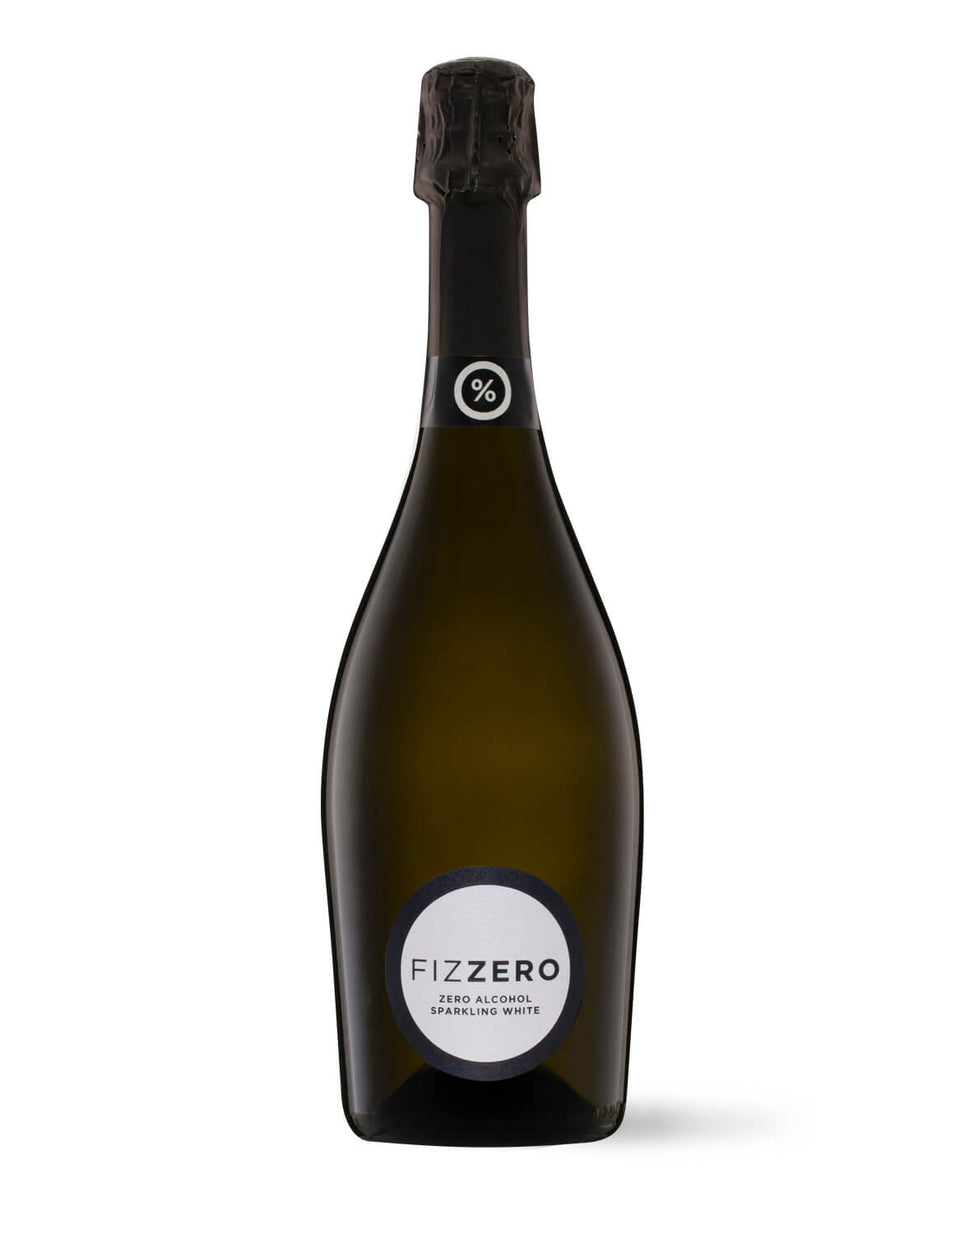 Fizzero Zero Alcohol Sparkling White Wine | Craftzero